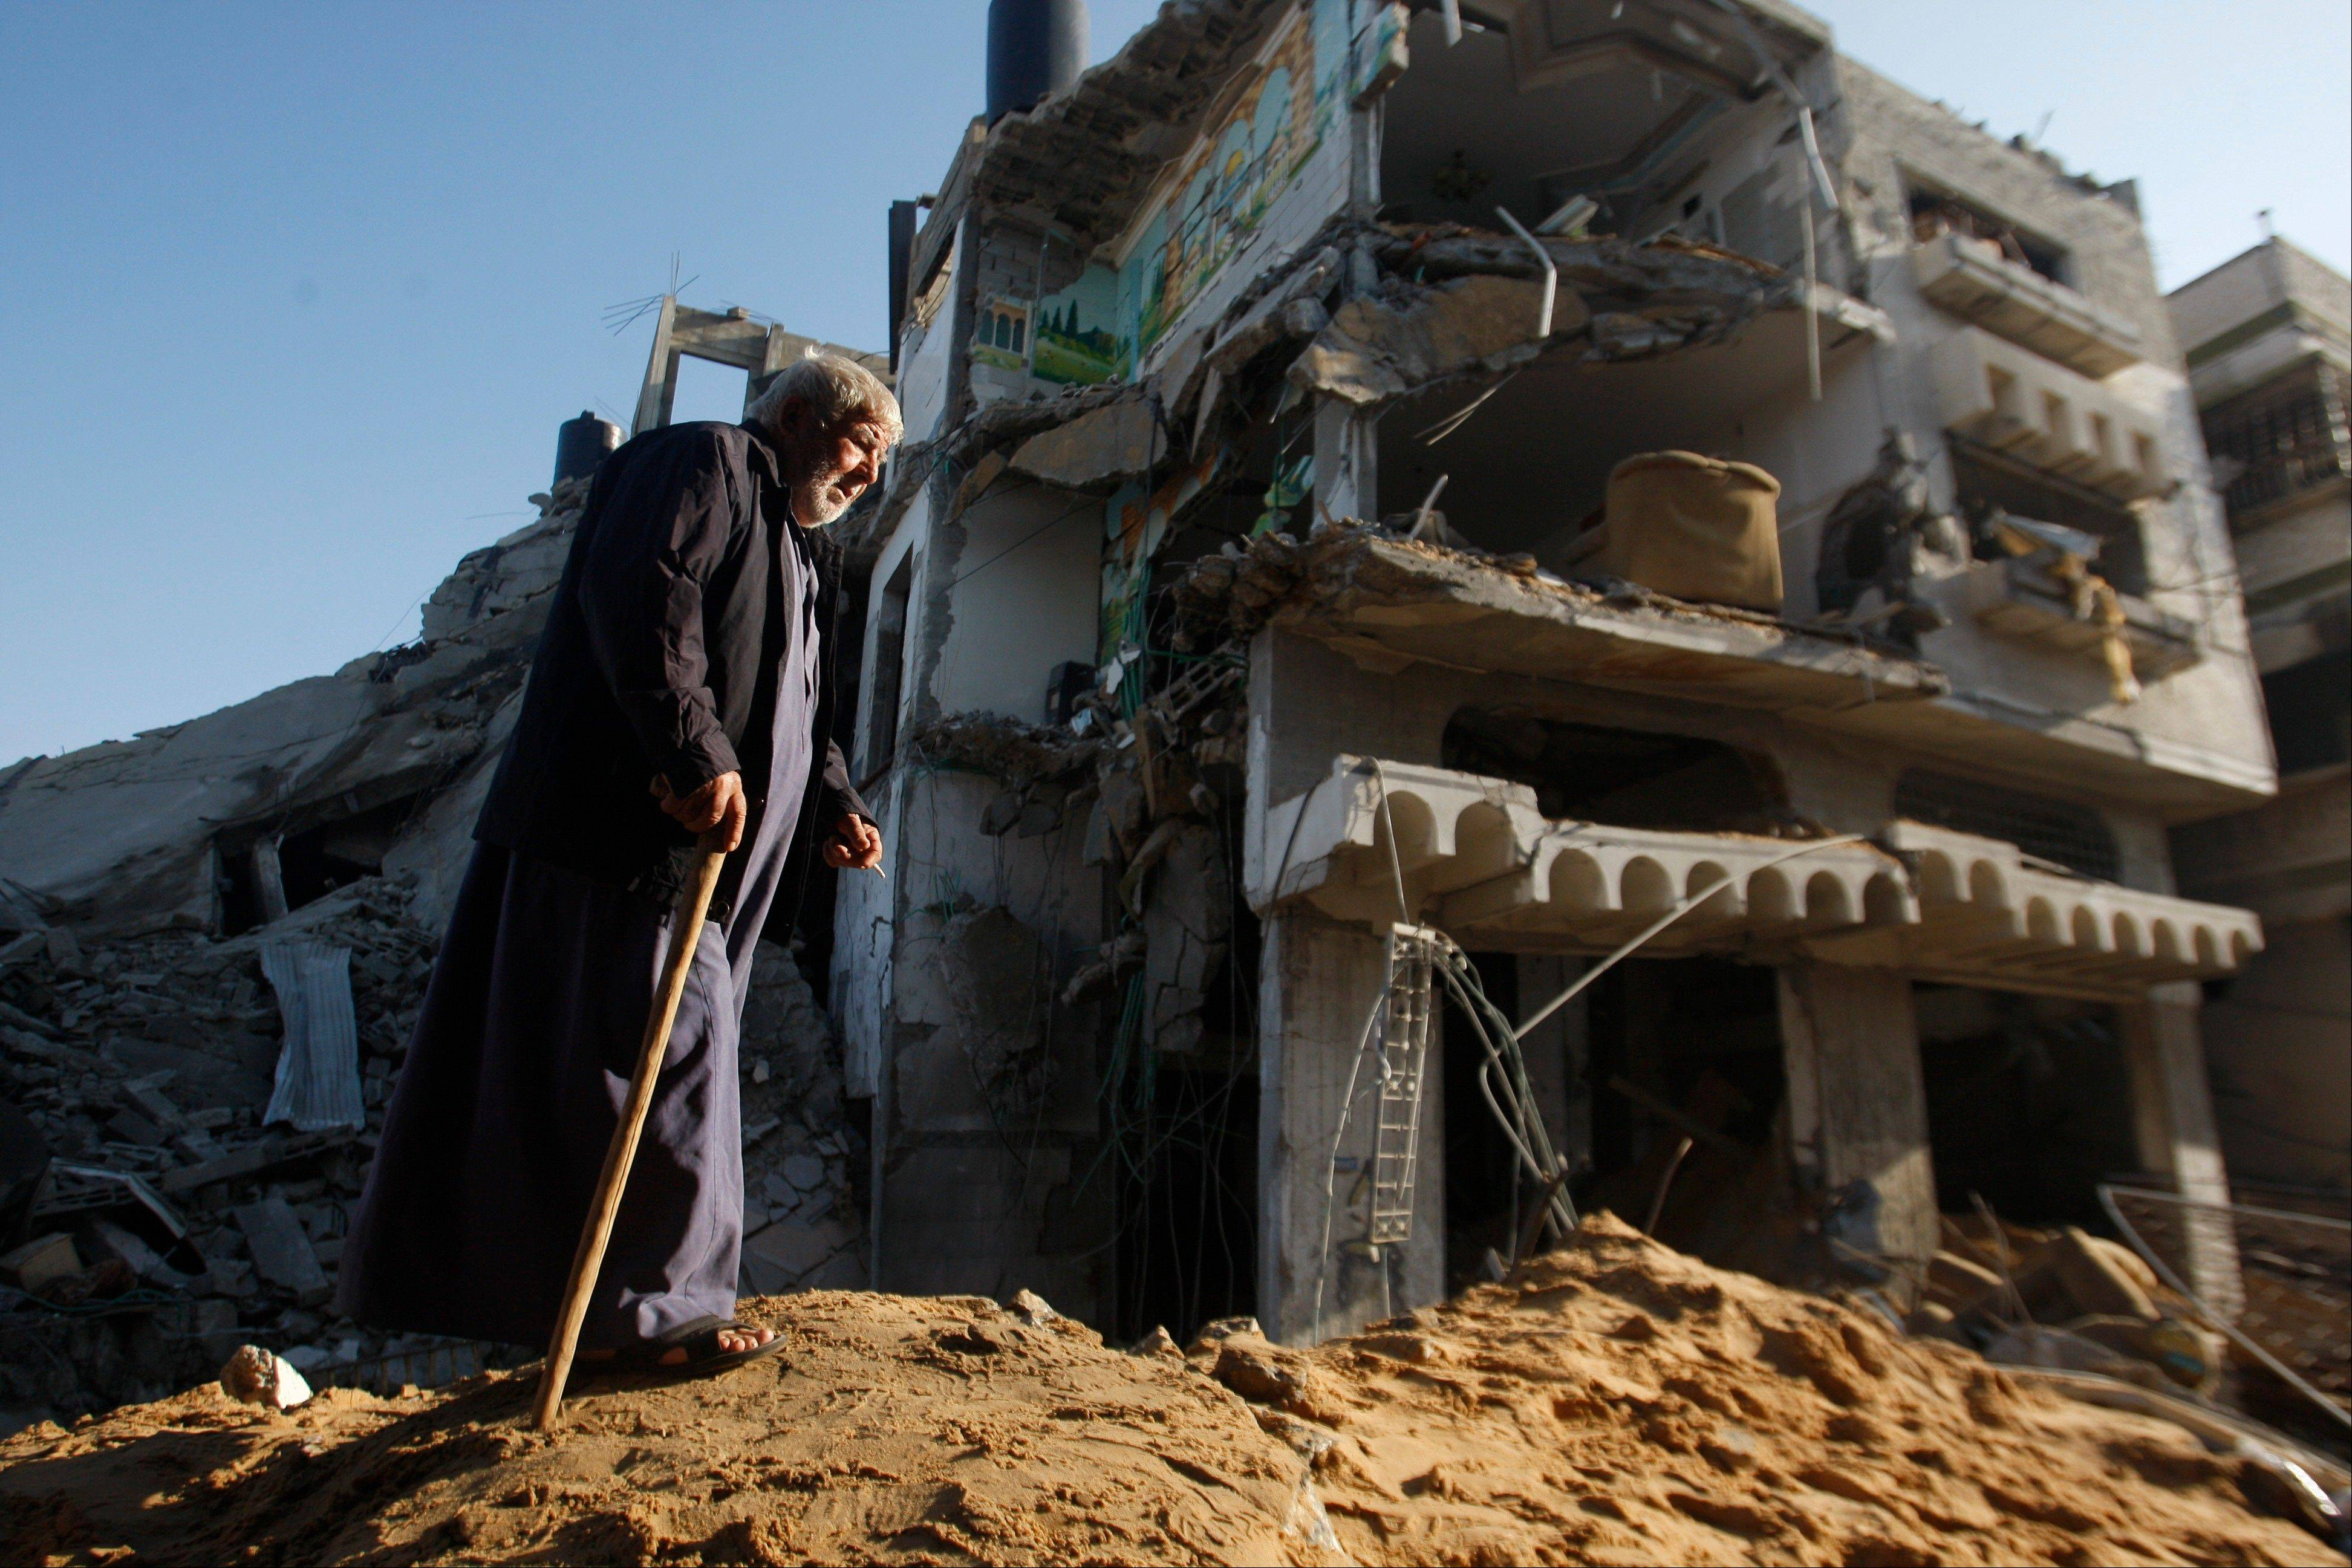 An elderly Palestinian walks next to a destroyed building after an Israeli strike in Gaza City, Tuesday, Nov. 20, 2012.